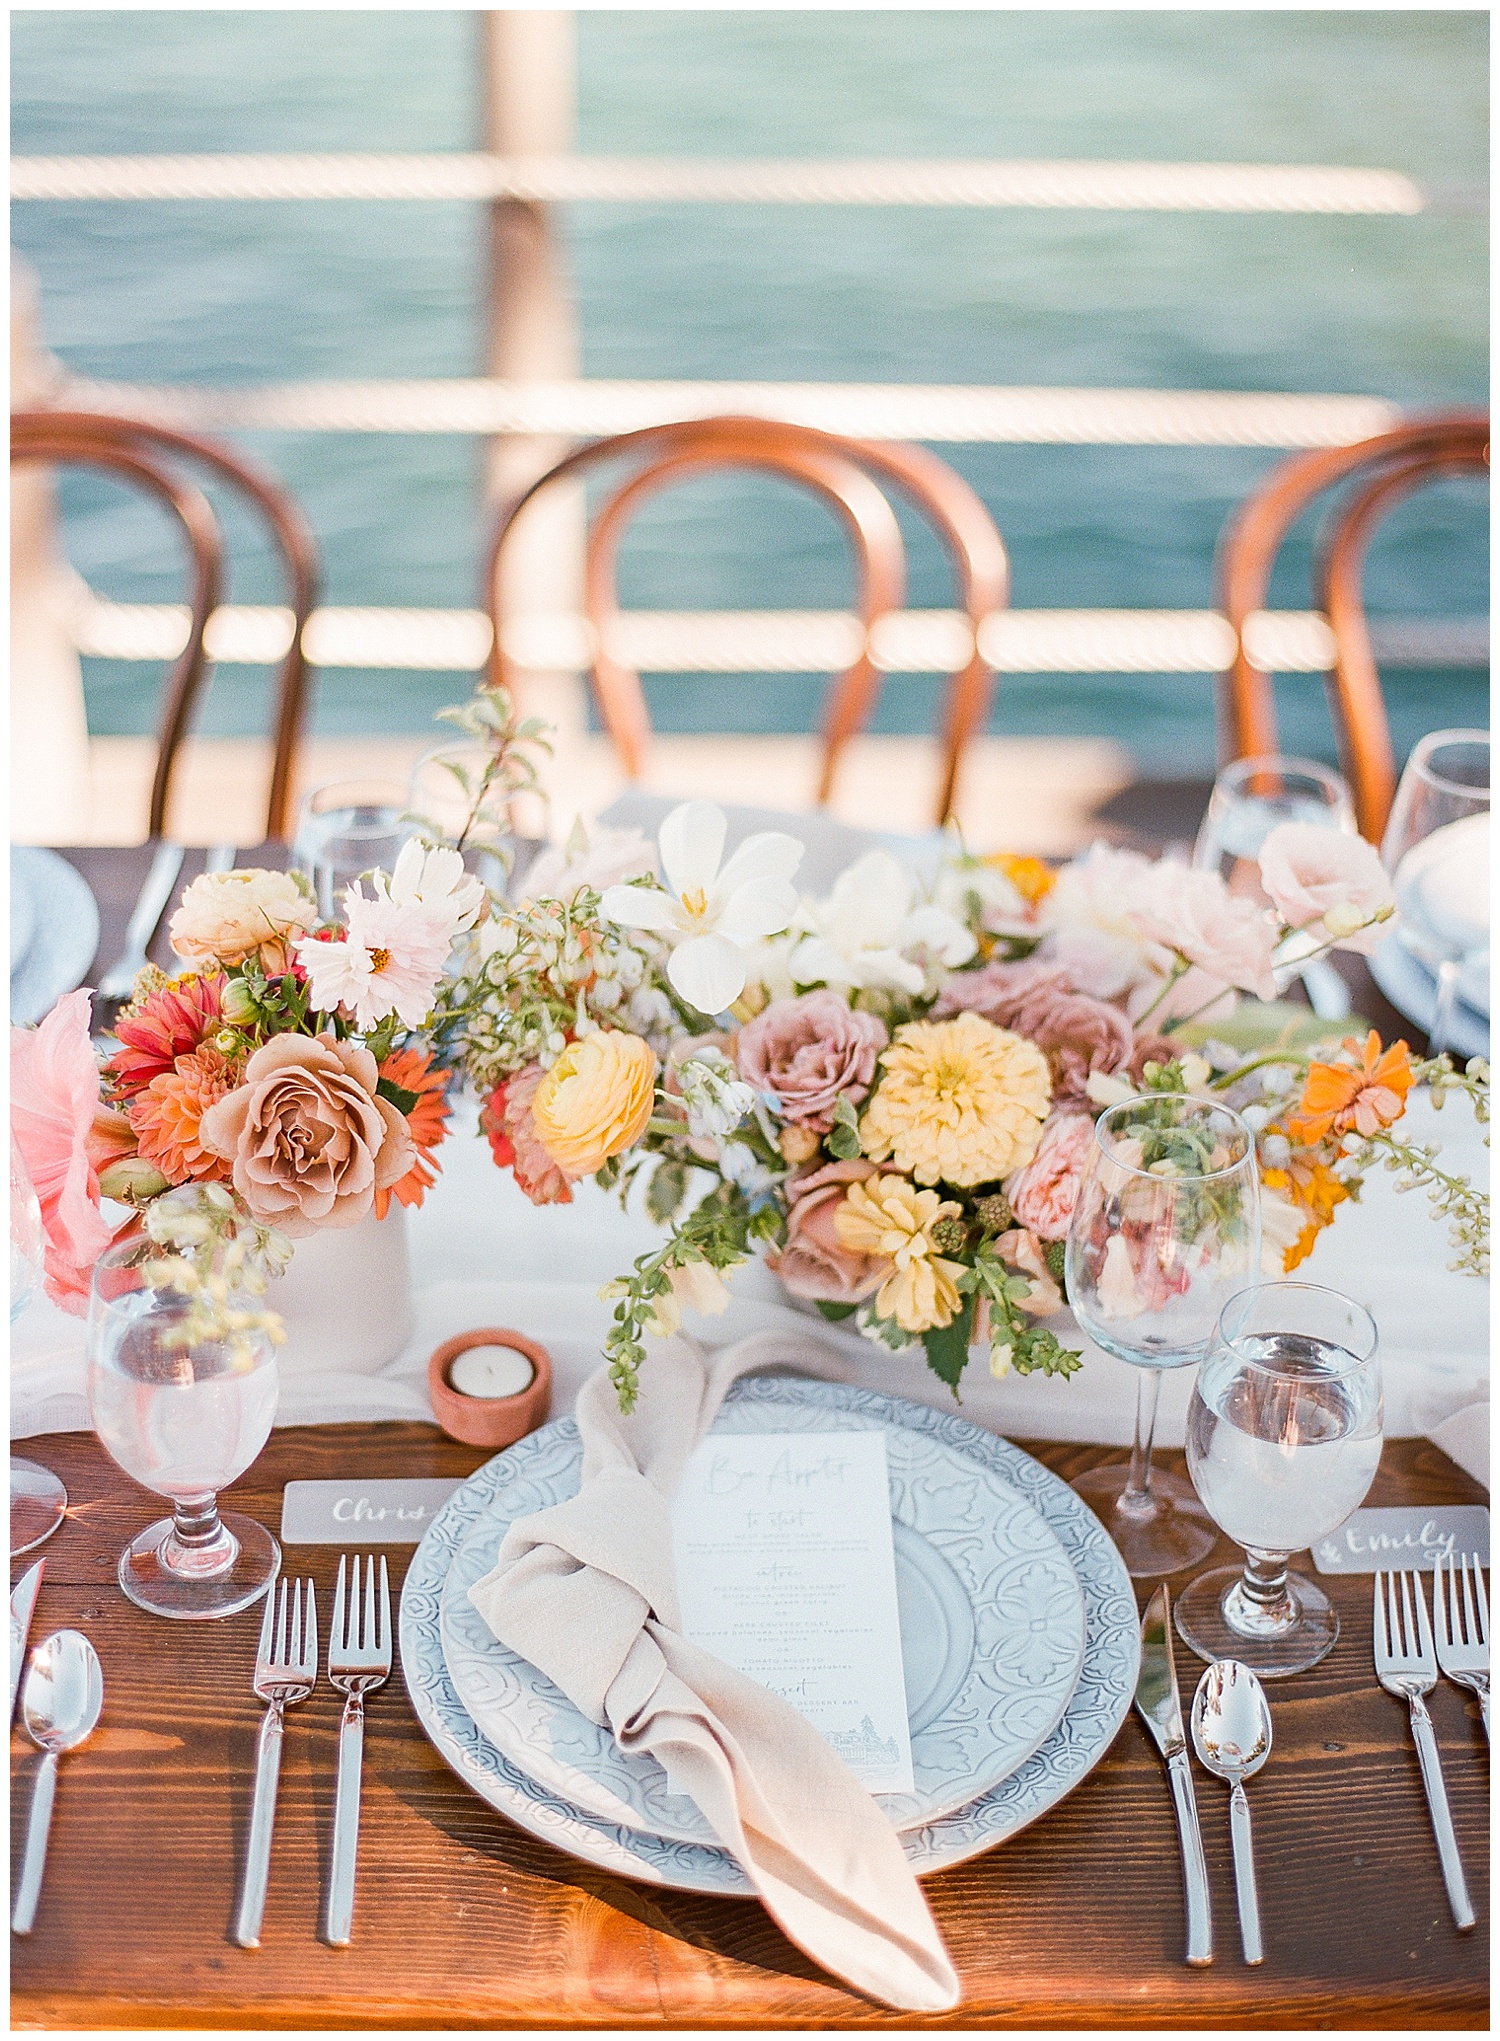 Janine_Licare_Photography_San_Francisco_Wedding_Photographer_Lake_Tahoe_West_Shore_Cafe_Colorful_Summer_0038.jpg